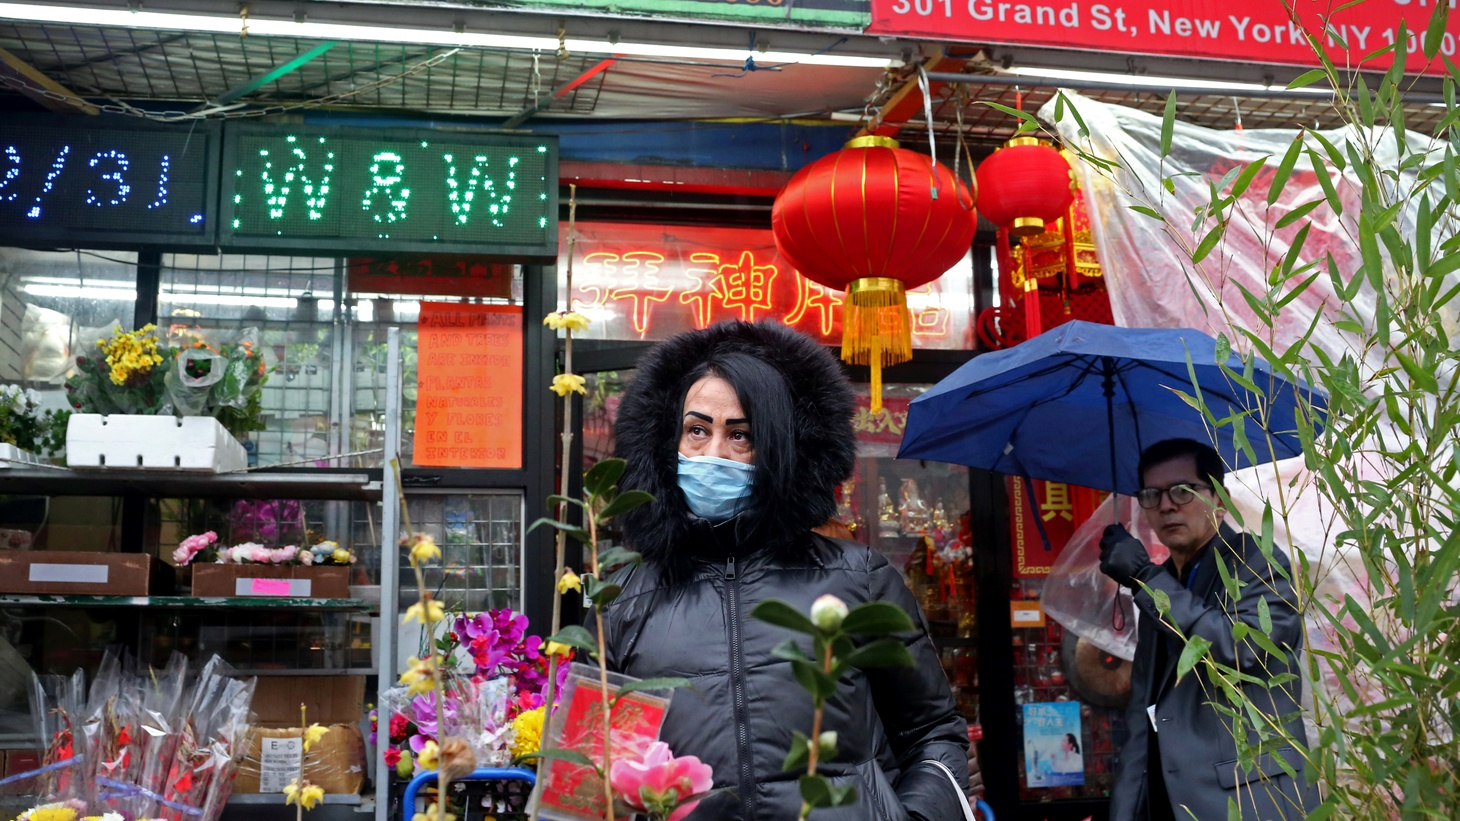 A woman who prefers to remain anonymous poses for a picture in Chinatown in New York, U.S., February 13, 2020. Originally from Kazakhstan, she said she's lived in New York for two years, and that she wears a mask because she has five children and is afraid of coronavirus transmission.